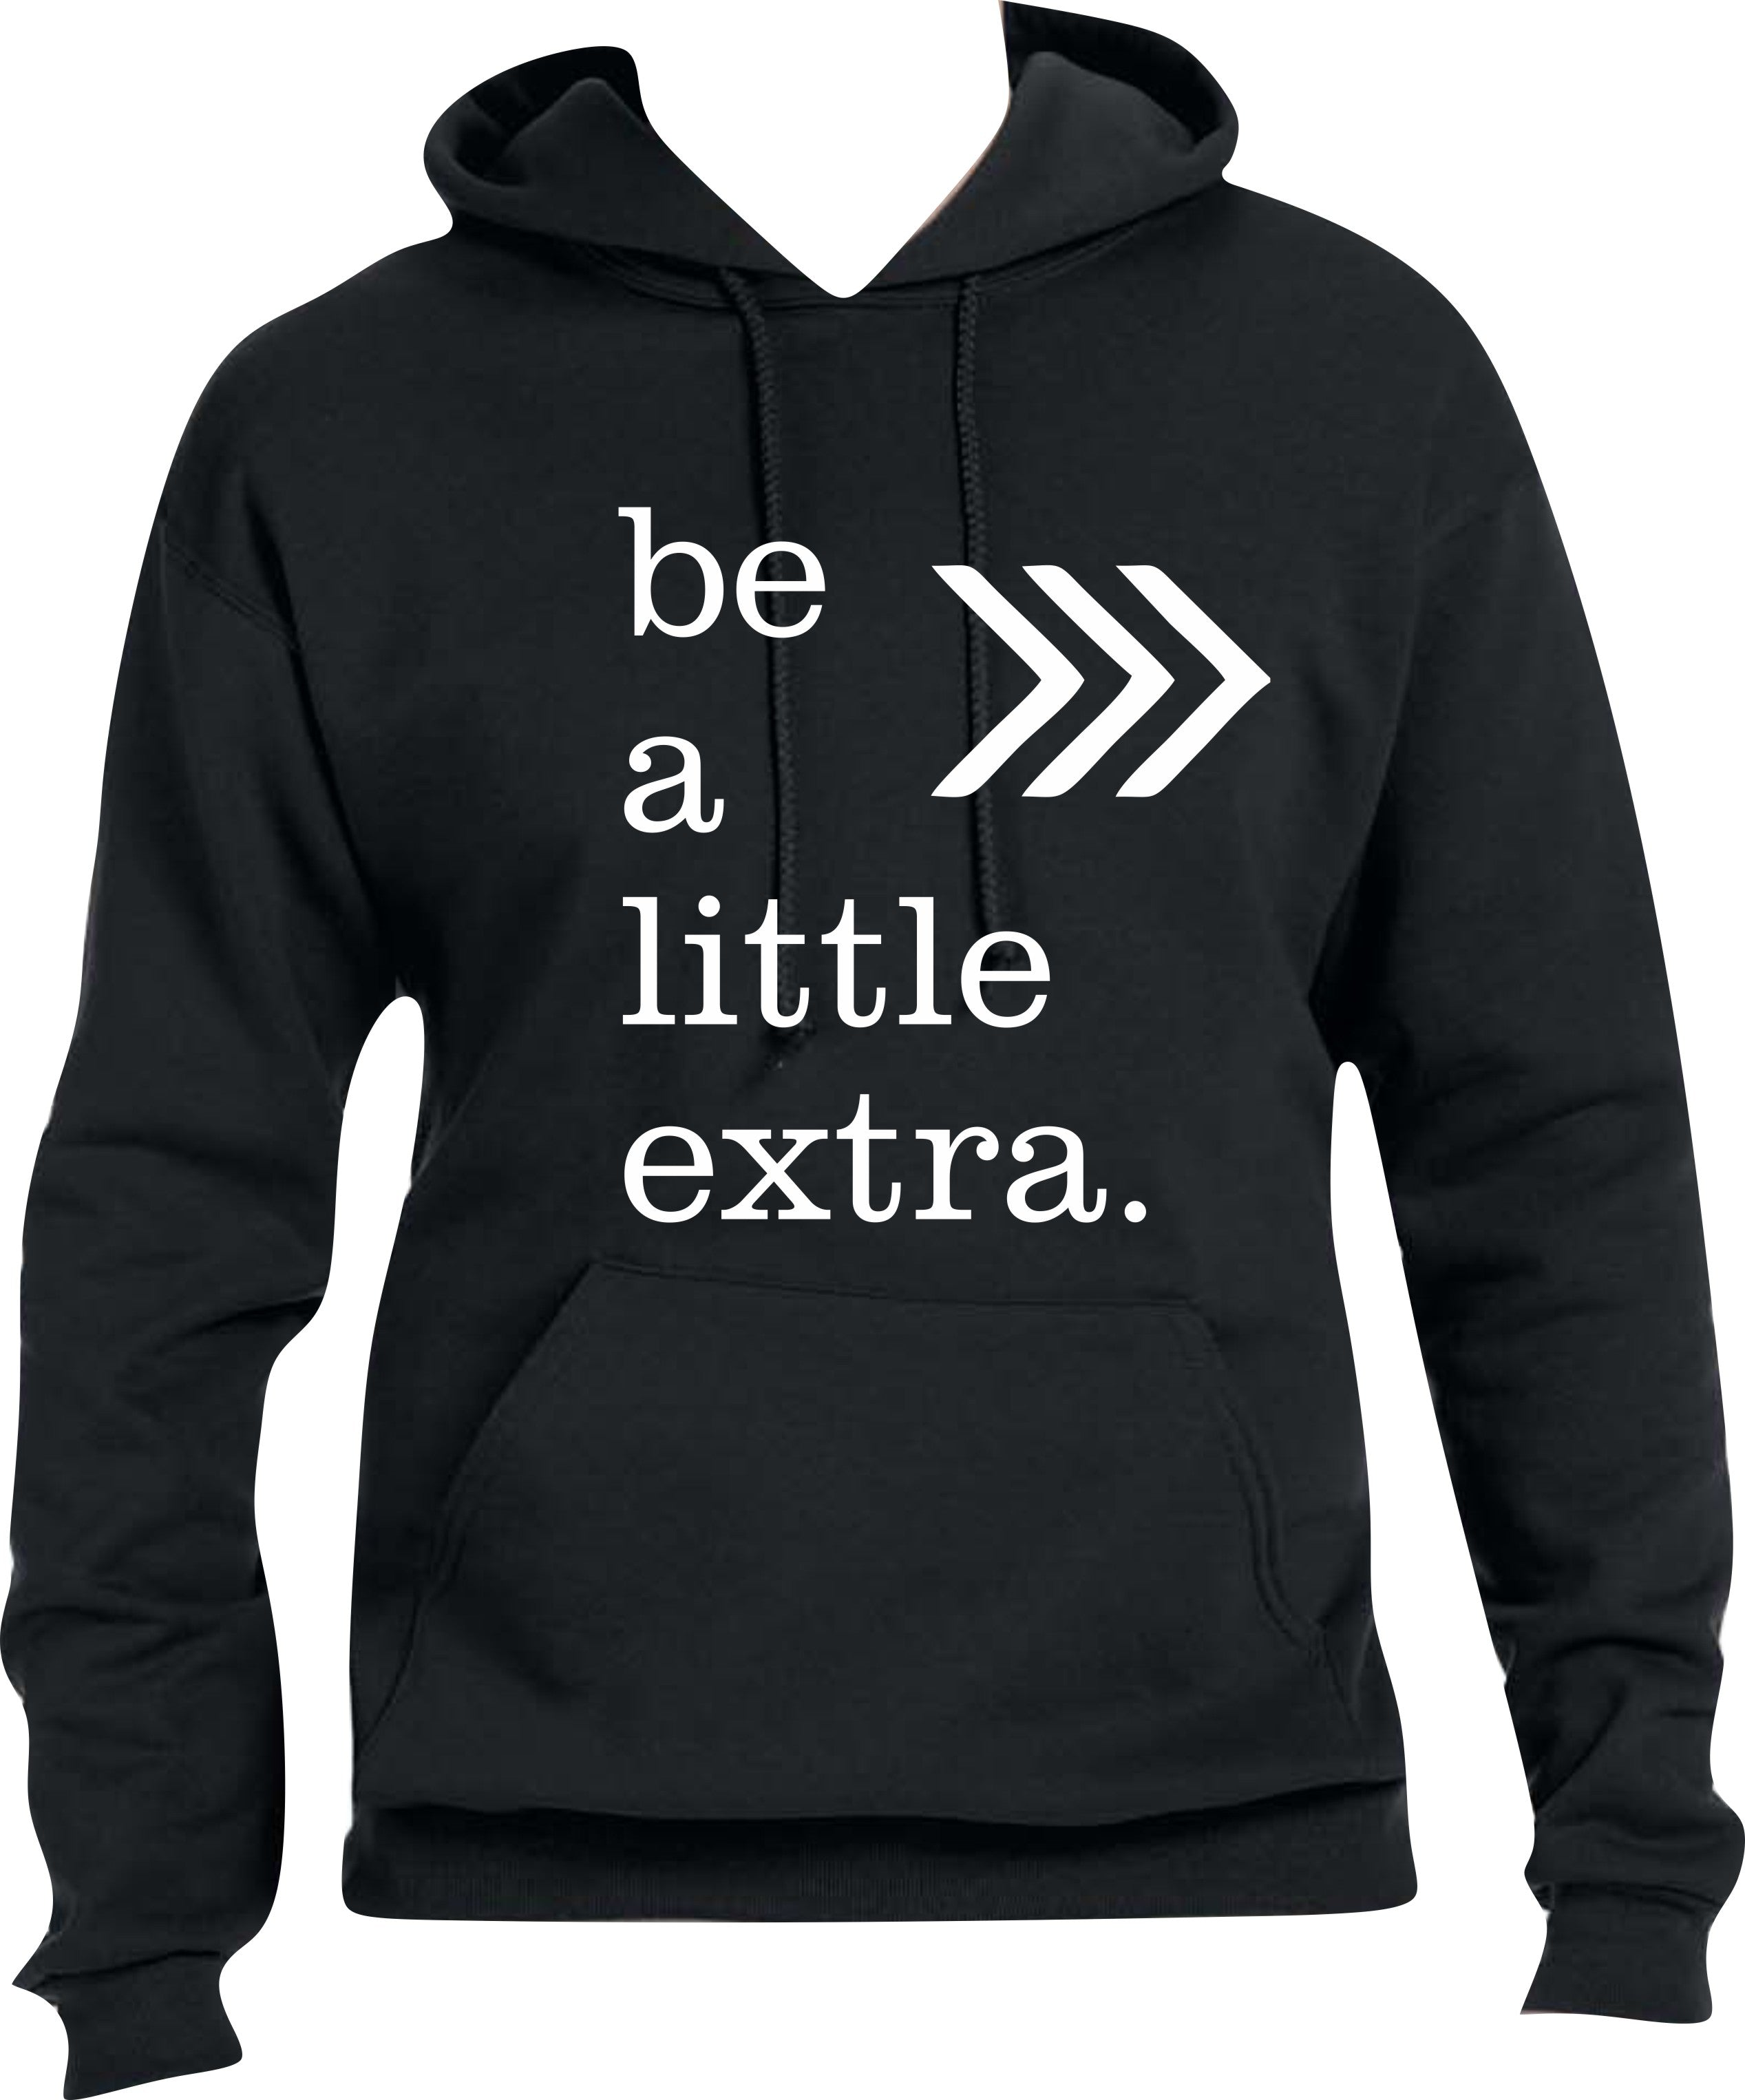 Hoodie: Be a Little Extra & Support Down Syndrome